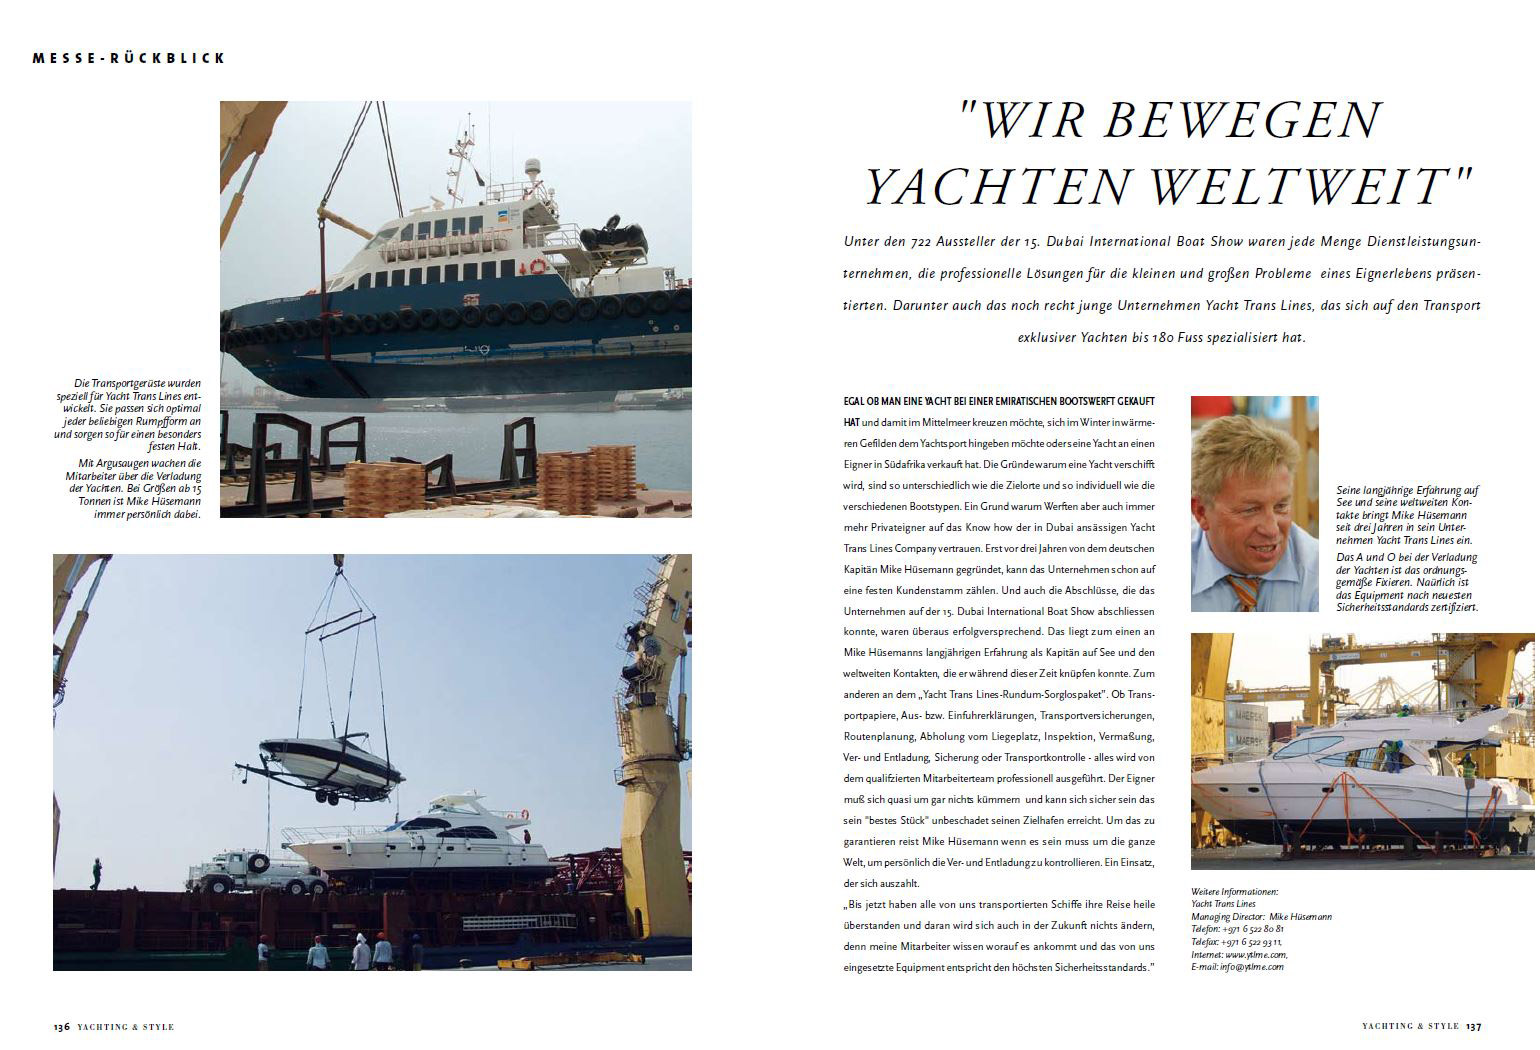 yacht-trans-lines-yachting-style-article